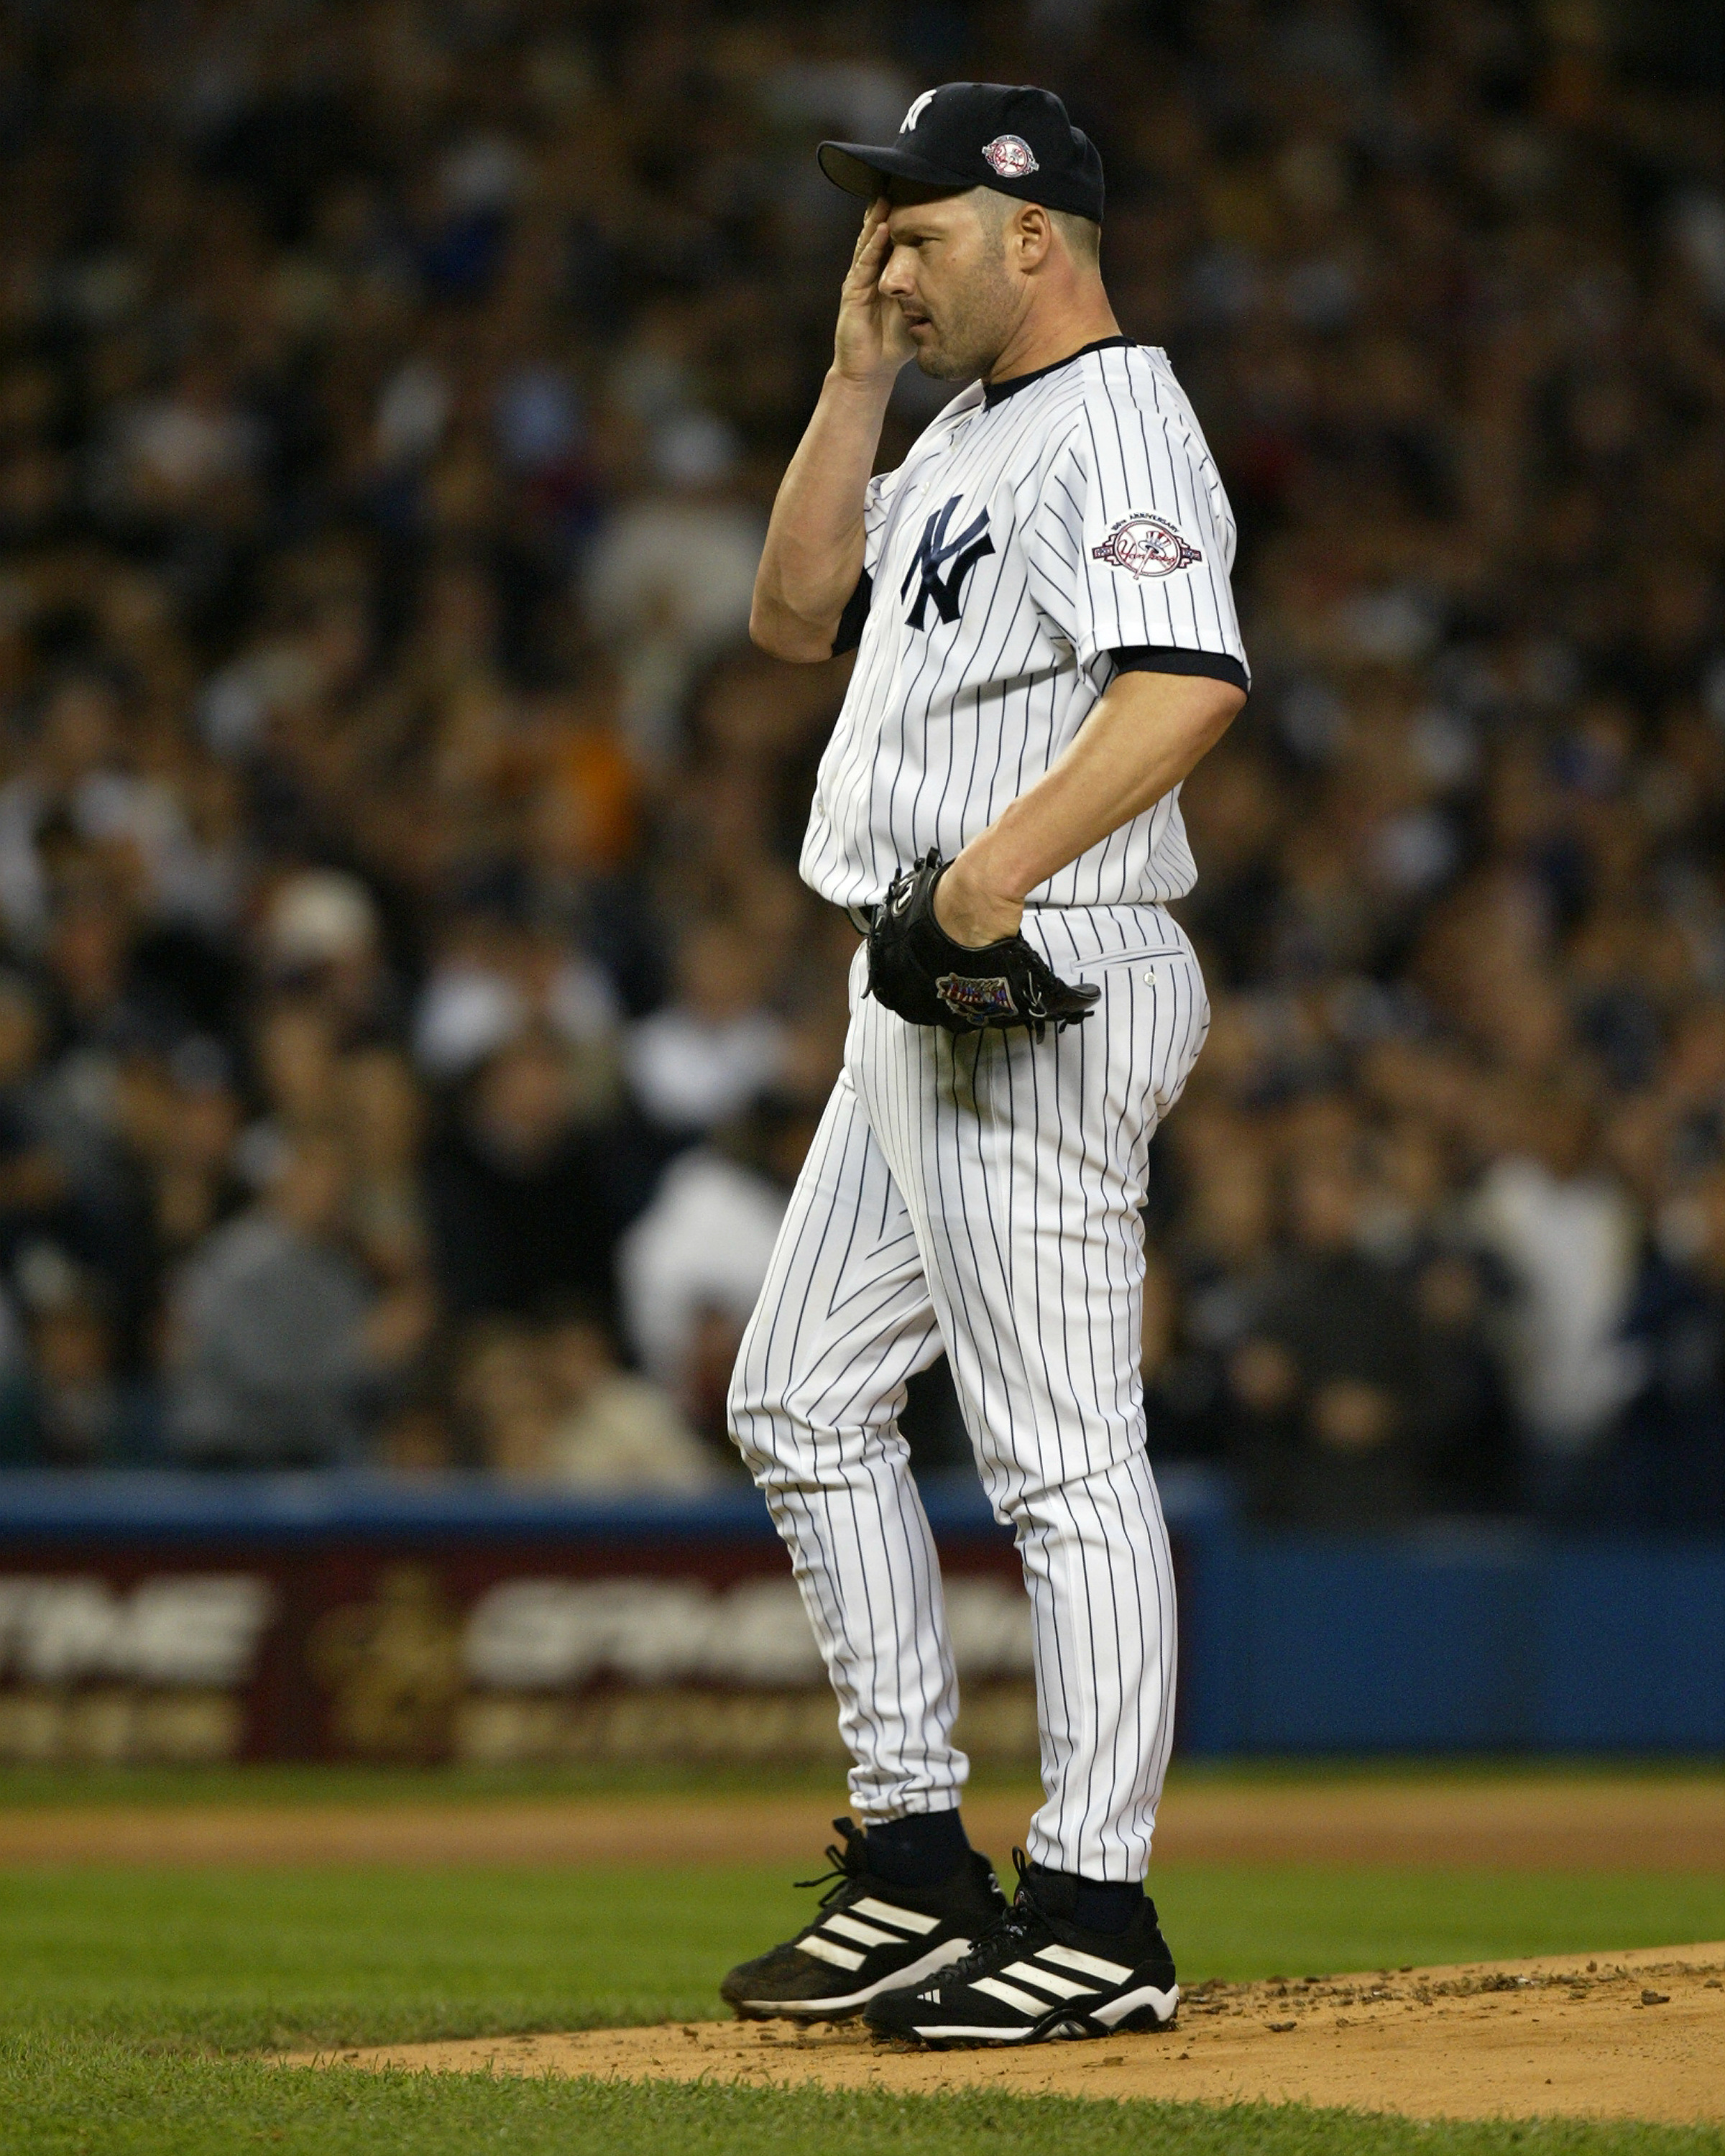 New York Yankees' starter Roger Clemens wipes his forehead a